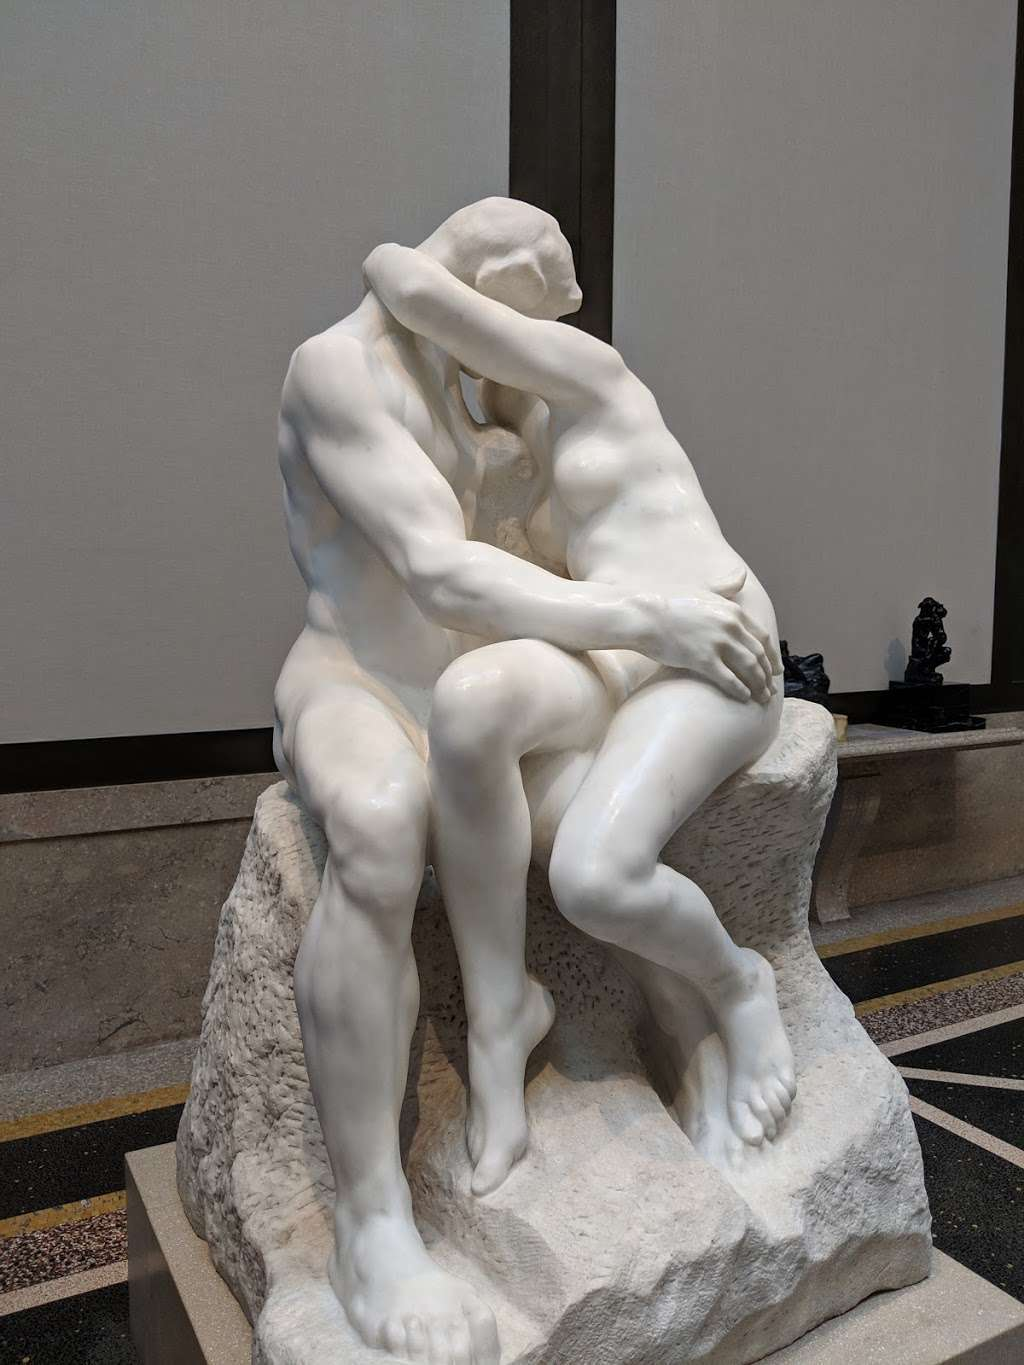 Rodin Museum - museum  | Photo 5 of 10 | Address: 2151 Benjamin Franklin Pkwy, Philadelphia, PA 19130, USA | Phone: (215) 763-8100